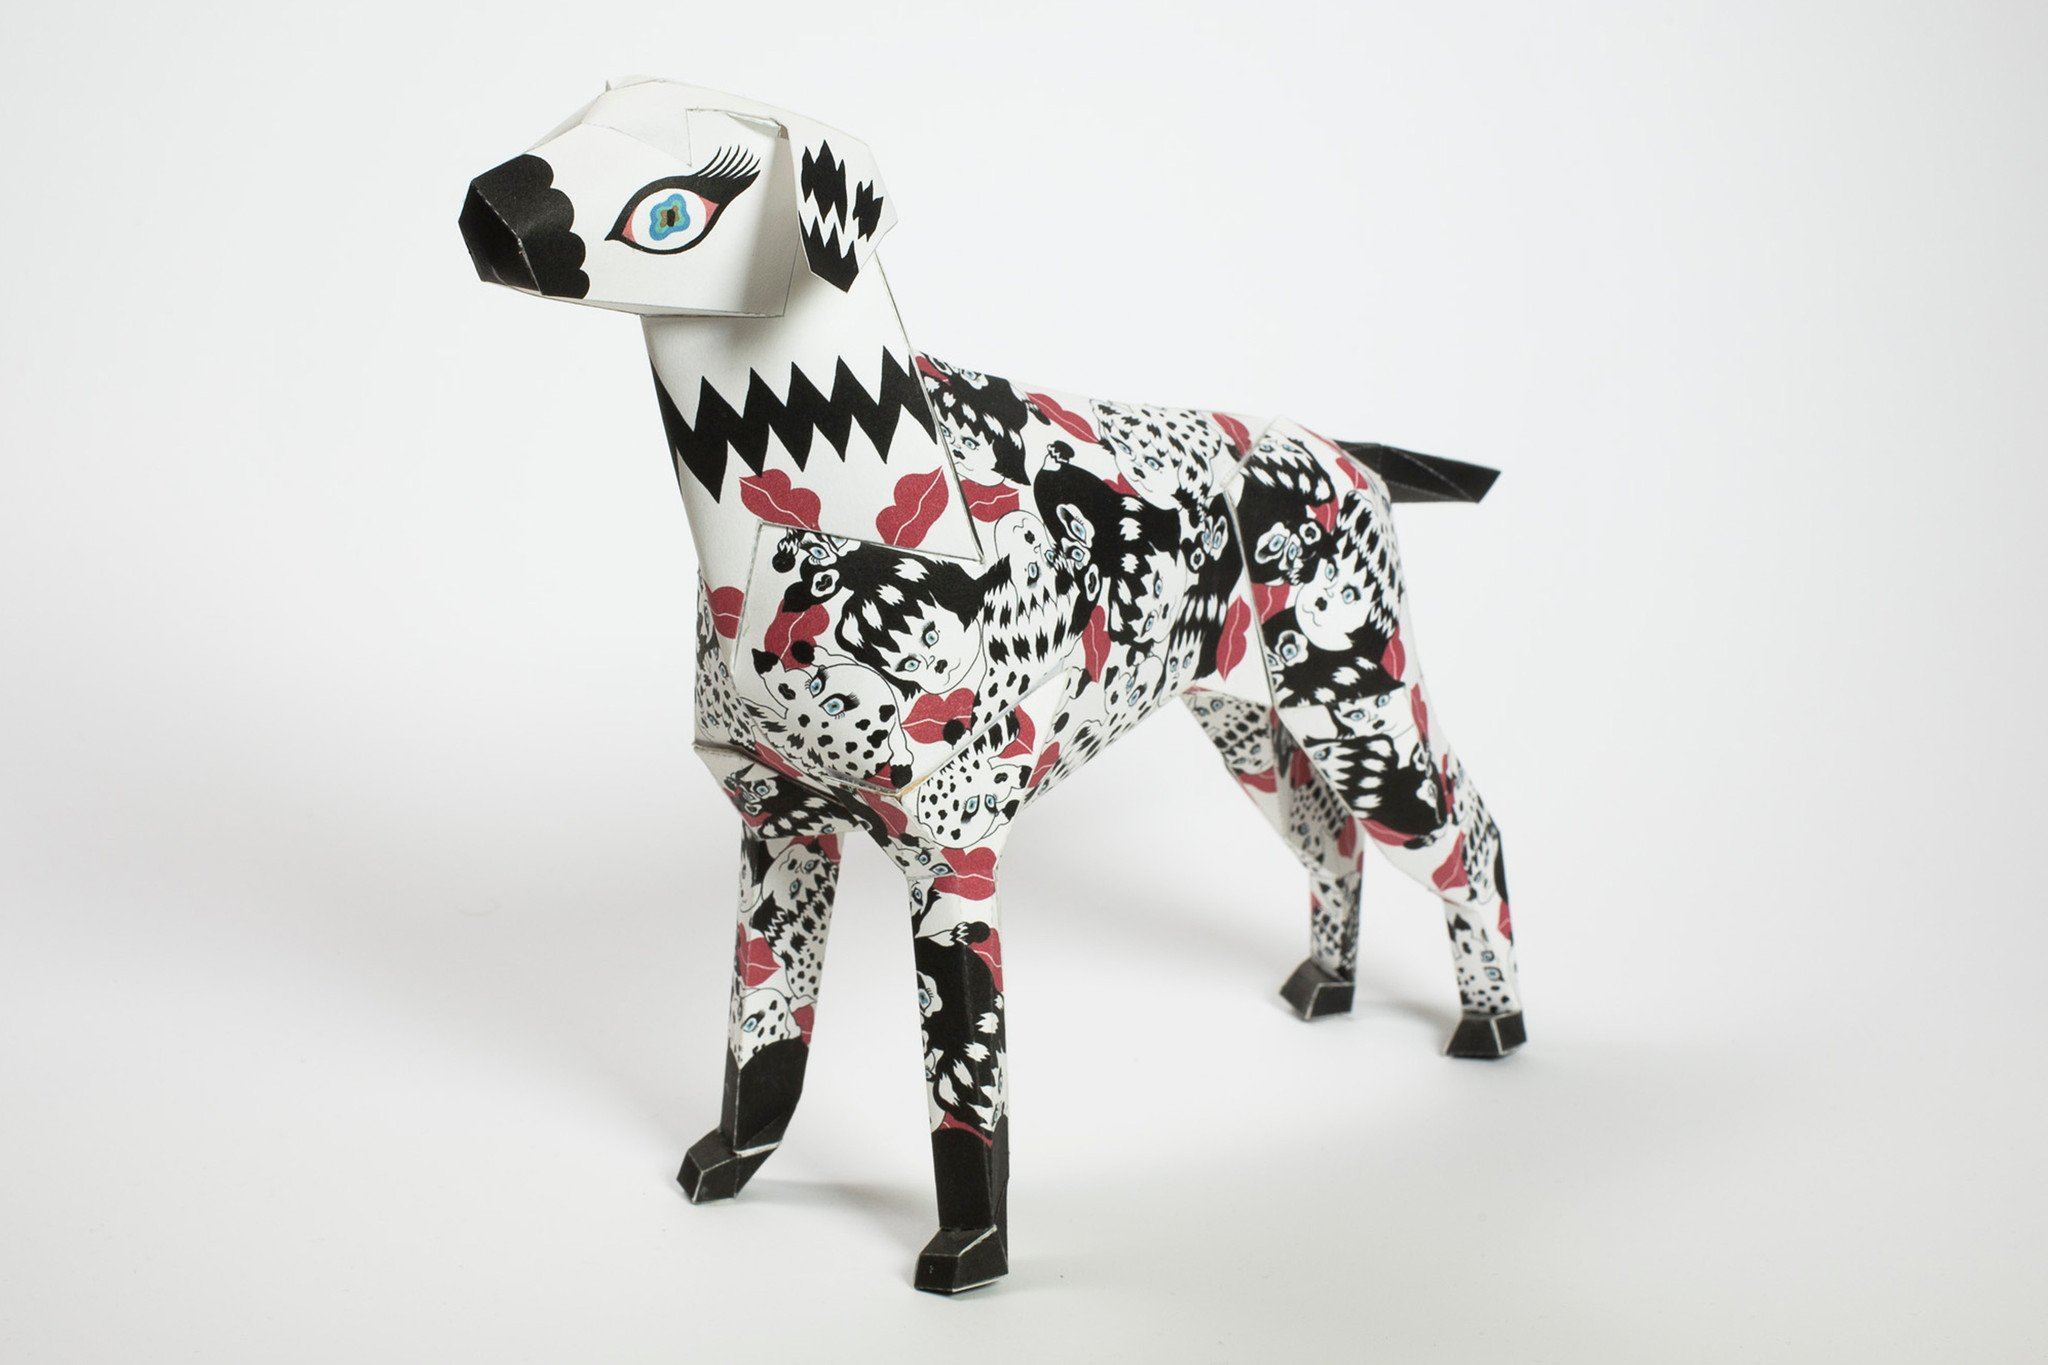 This paper dog sculpture is in 3D form and has a black and white pattern all over it with red lipstick marks spread sporadically around its body. Designed by artist Jang Koal as part of an international design exhibition by British design studio Lazerian. The paper dog is Lazerians mascot and was th emain focus in this project. Artist and designers from around the world were all invited to put their own spin and design onto the paper dog sculpture